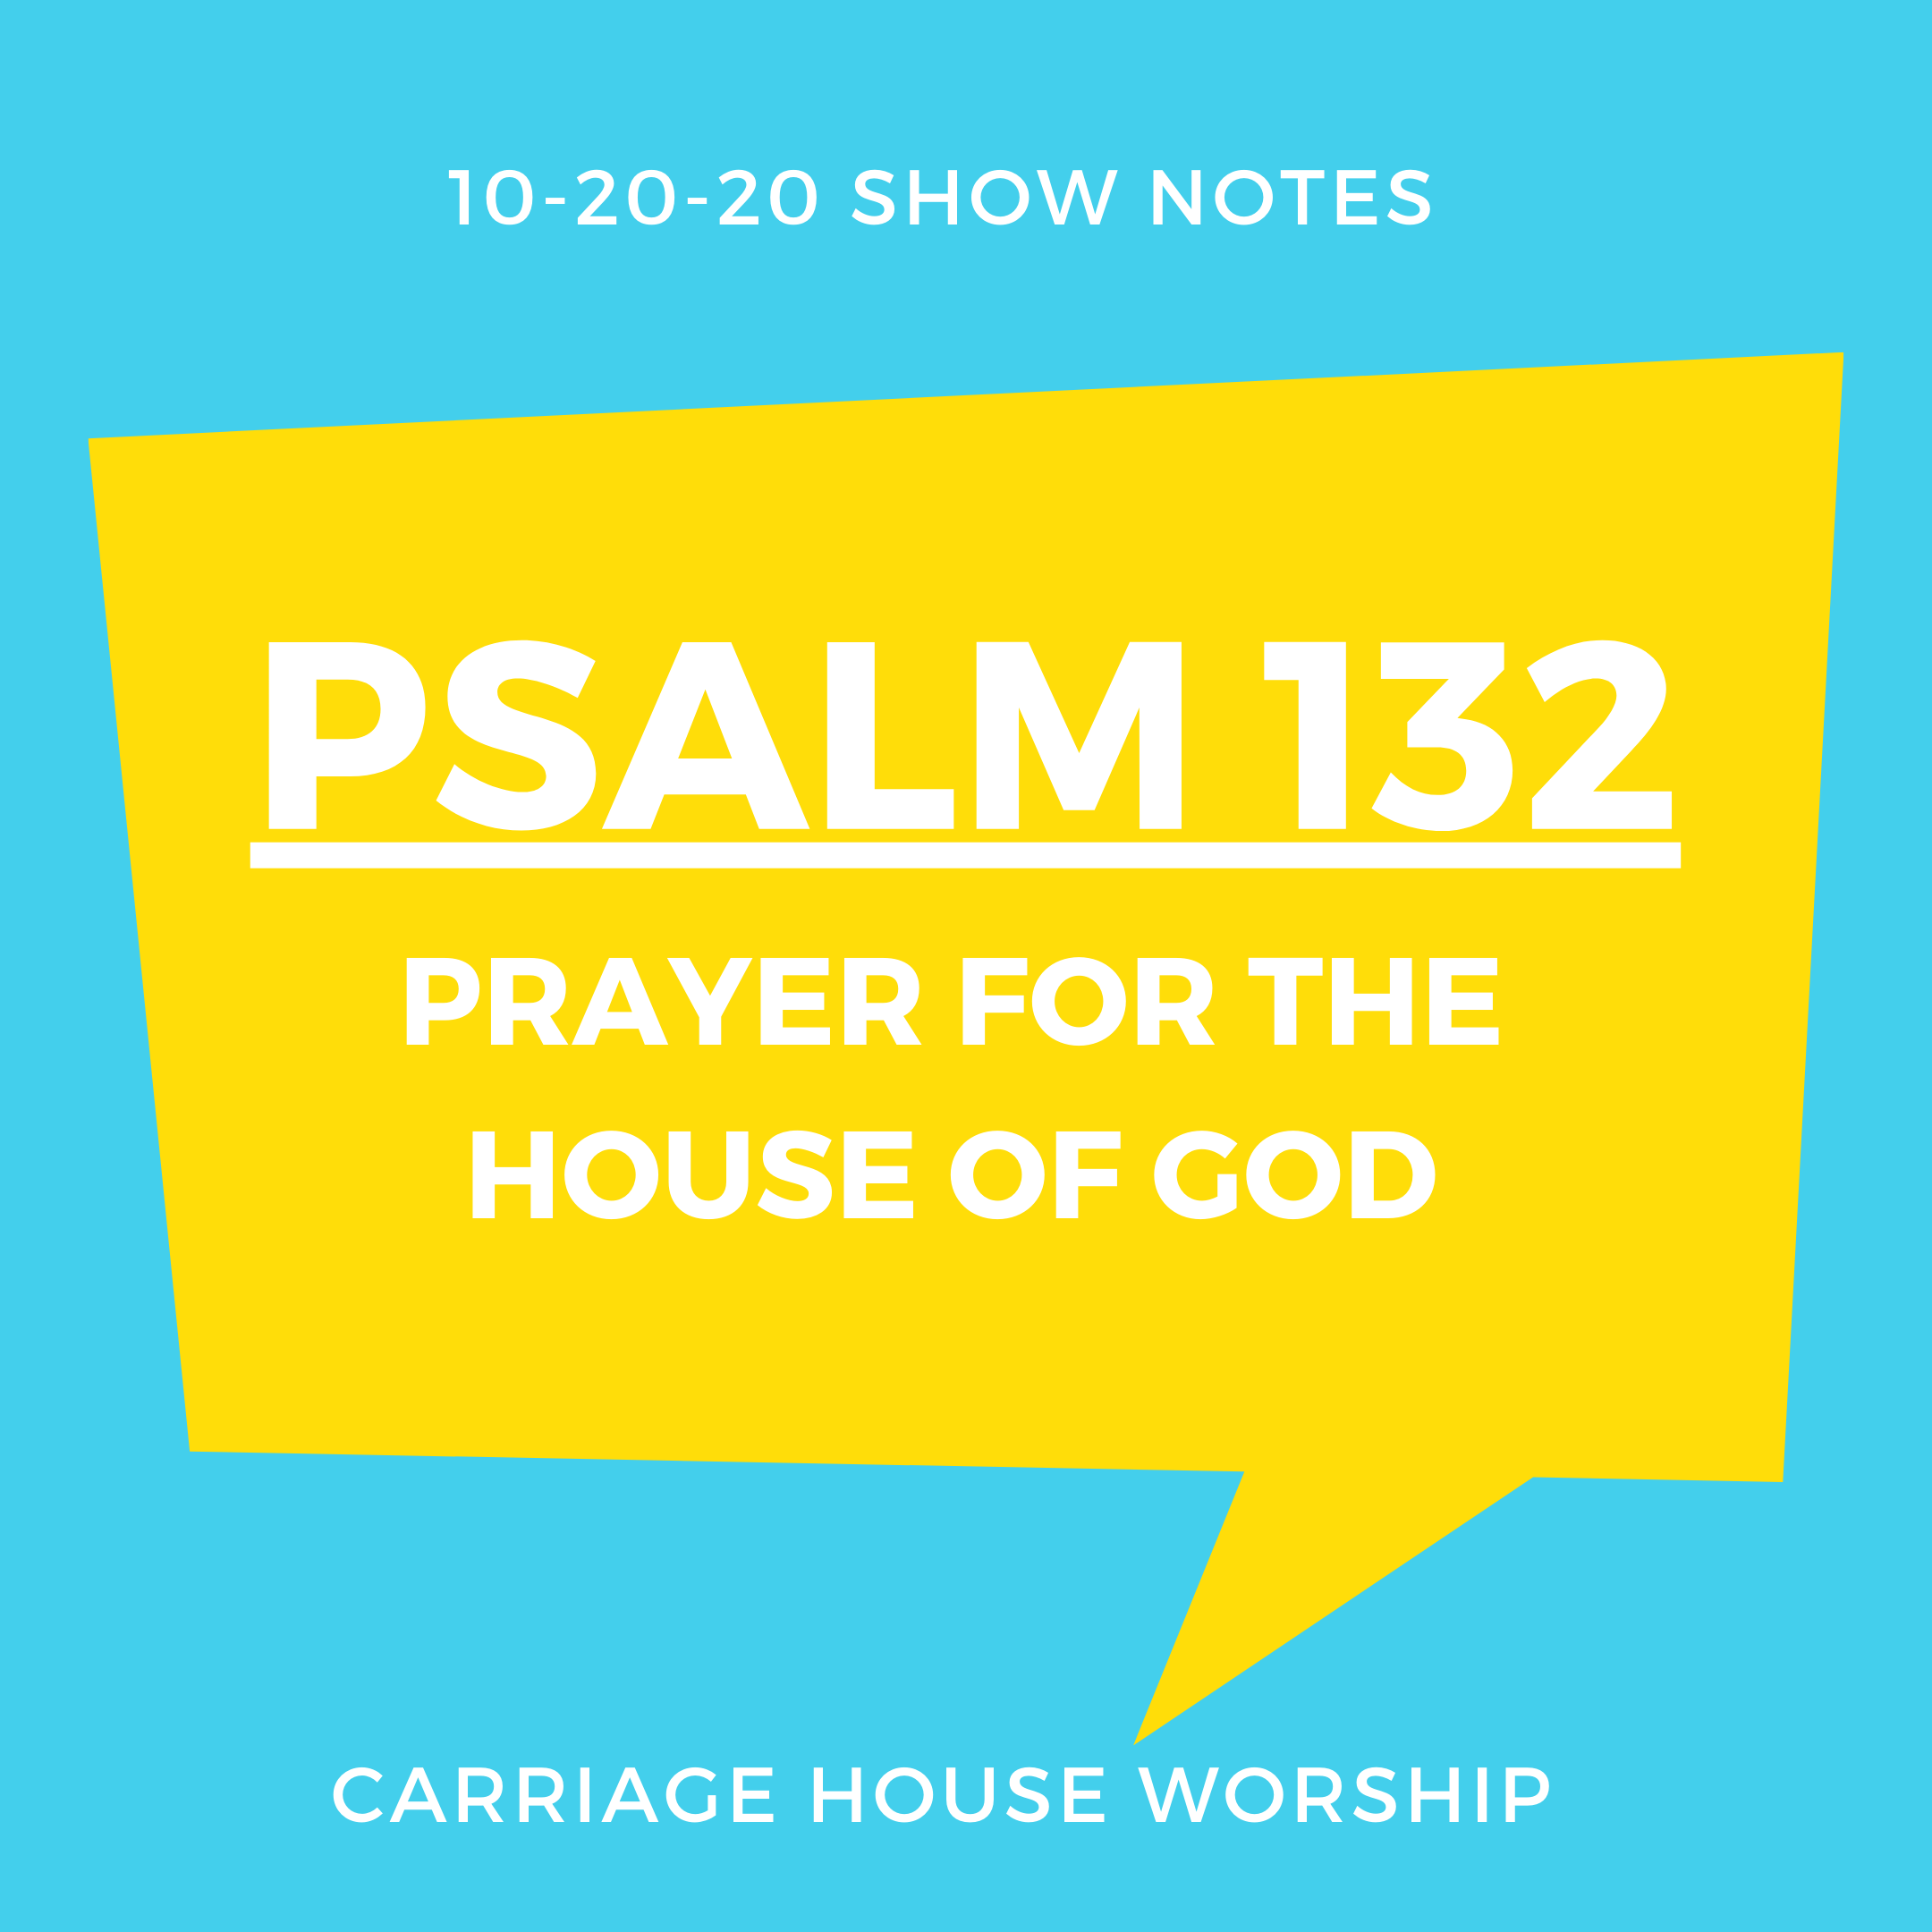 Show Notes - 10-20-20 Psalm 132 Prayer for the House of God